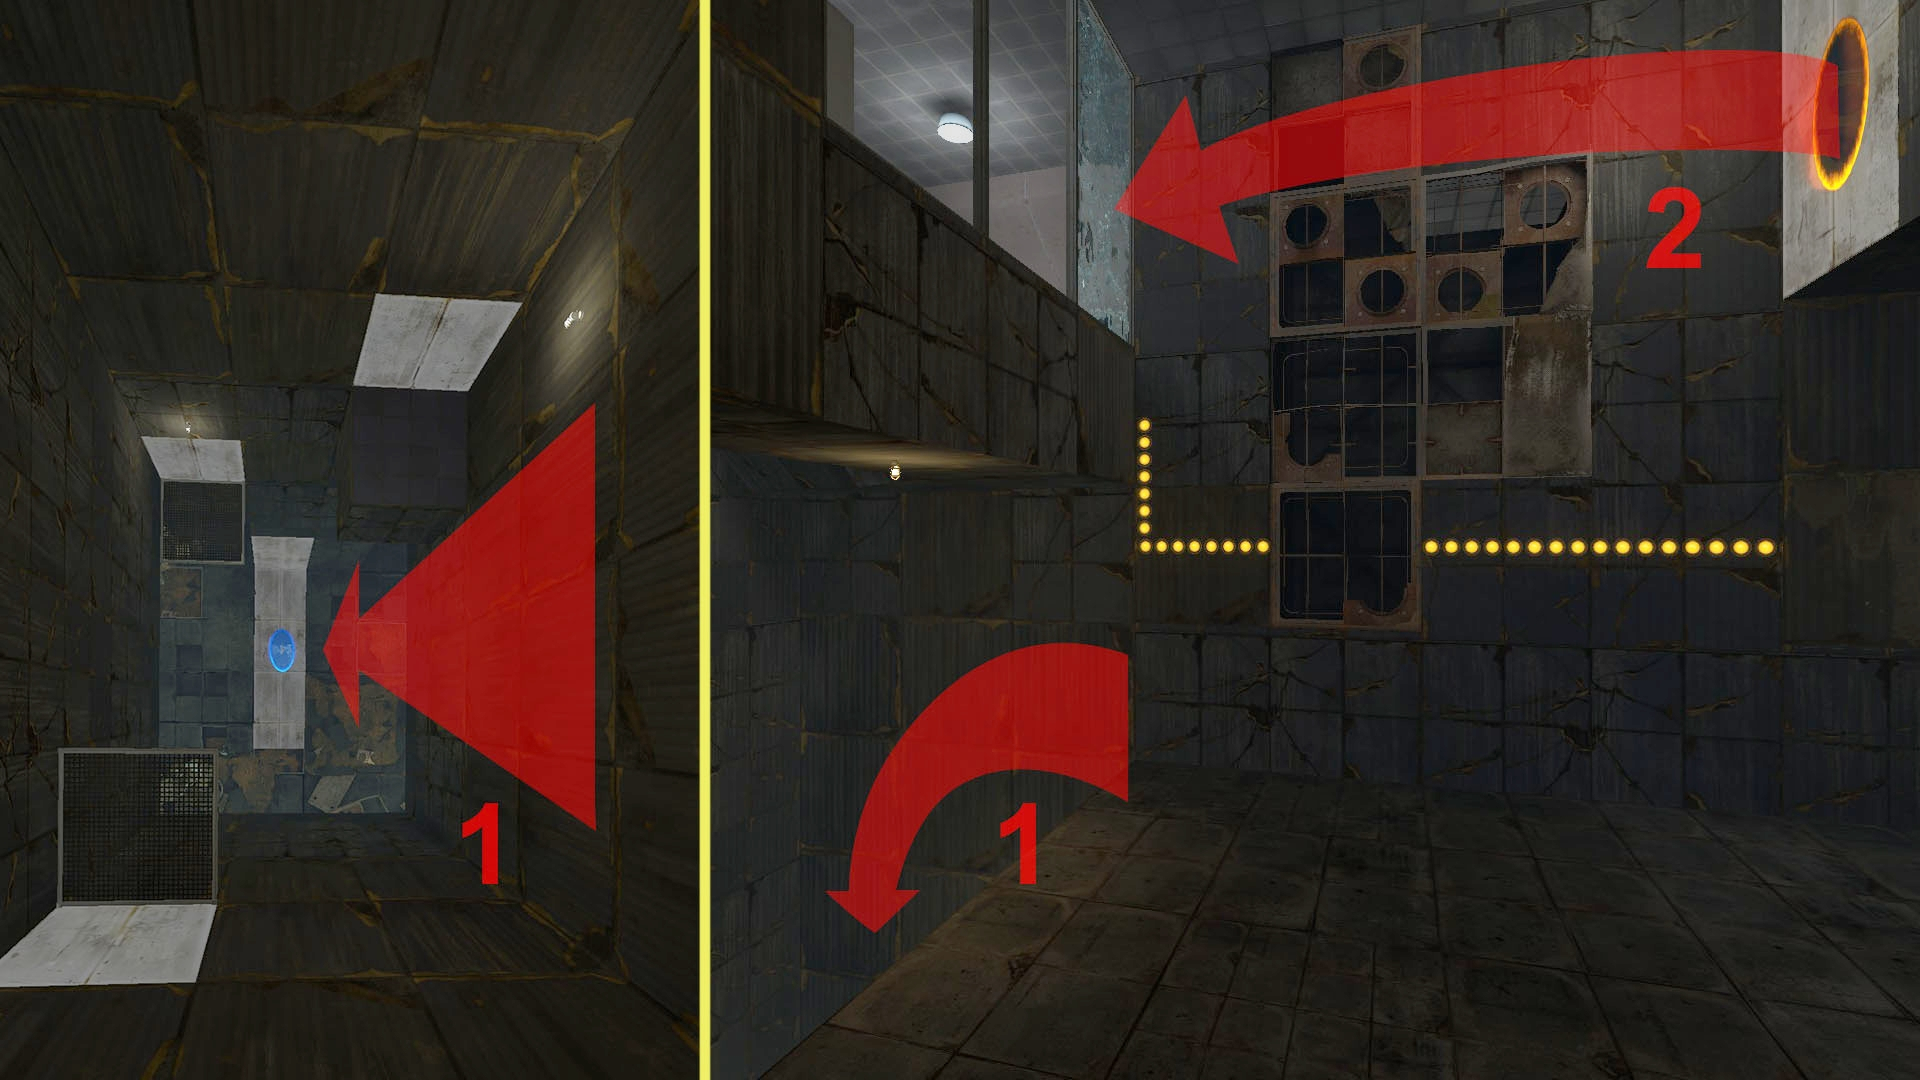 Using gravity makes the puzzles more intuitive and enabled re-use of areas